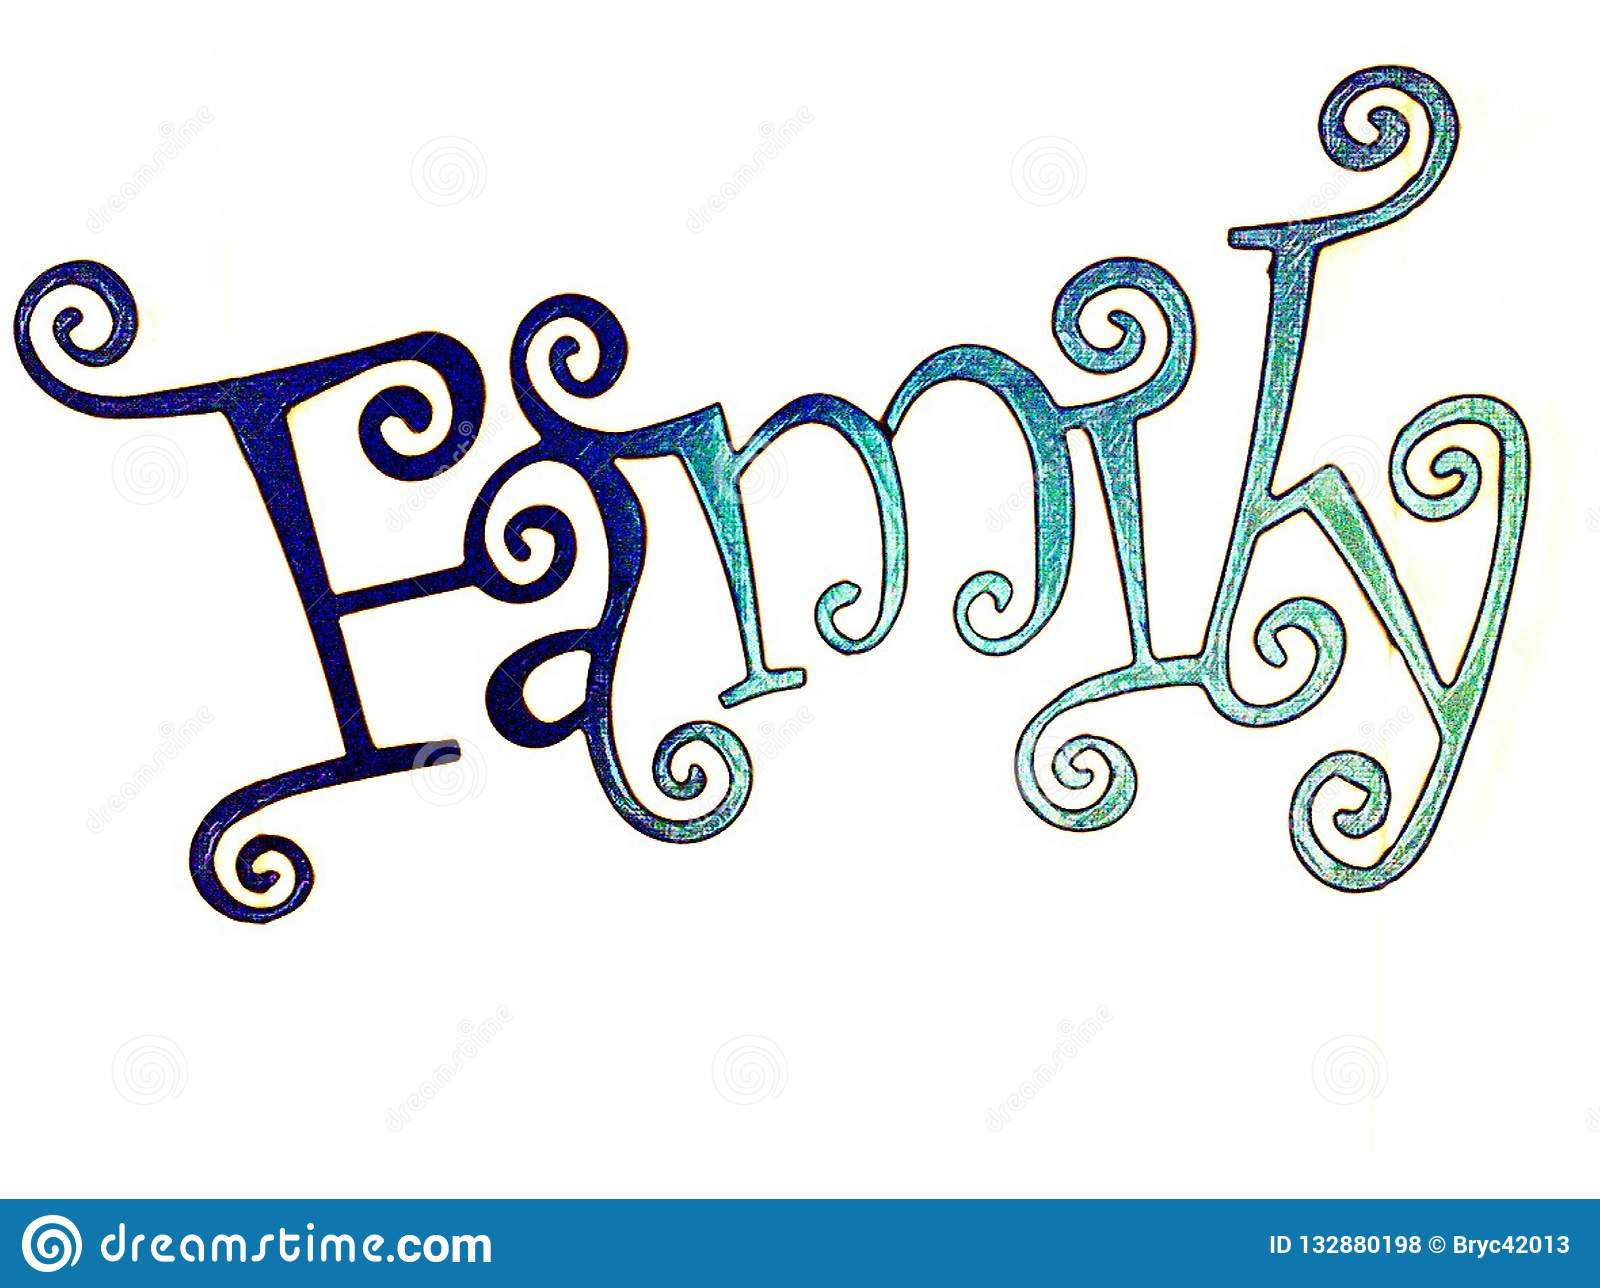 The Word Family In Styled Letters Stock Illustration